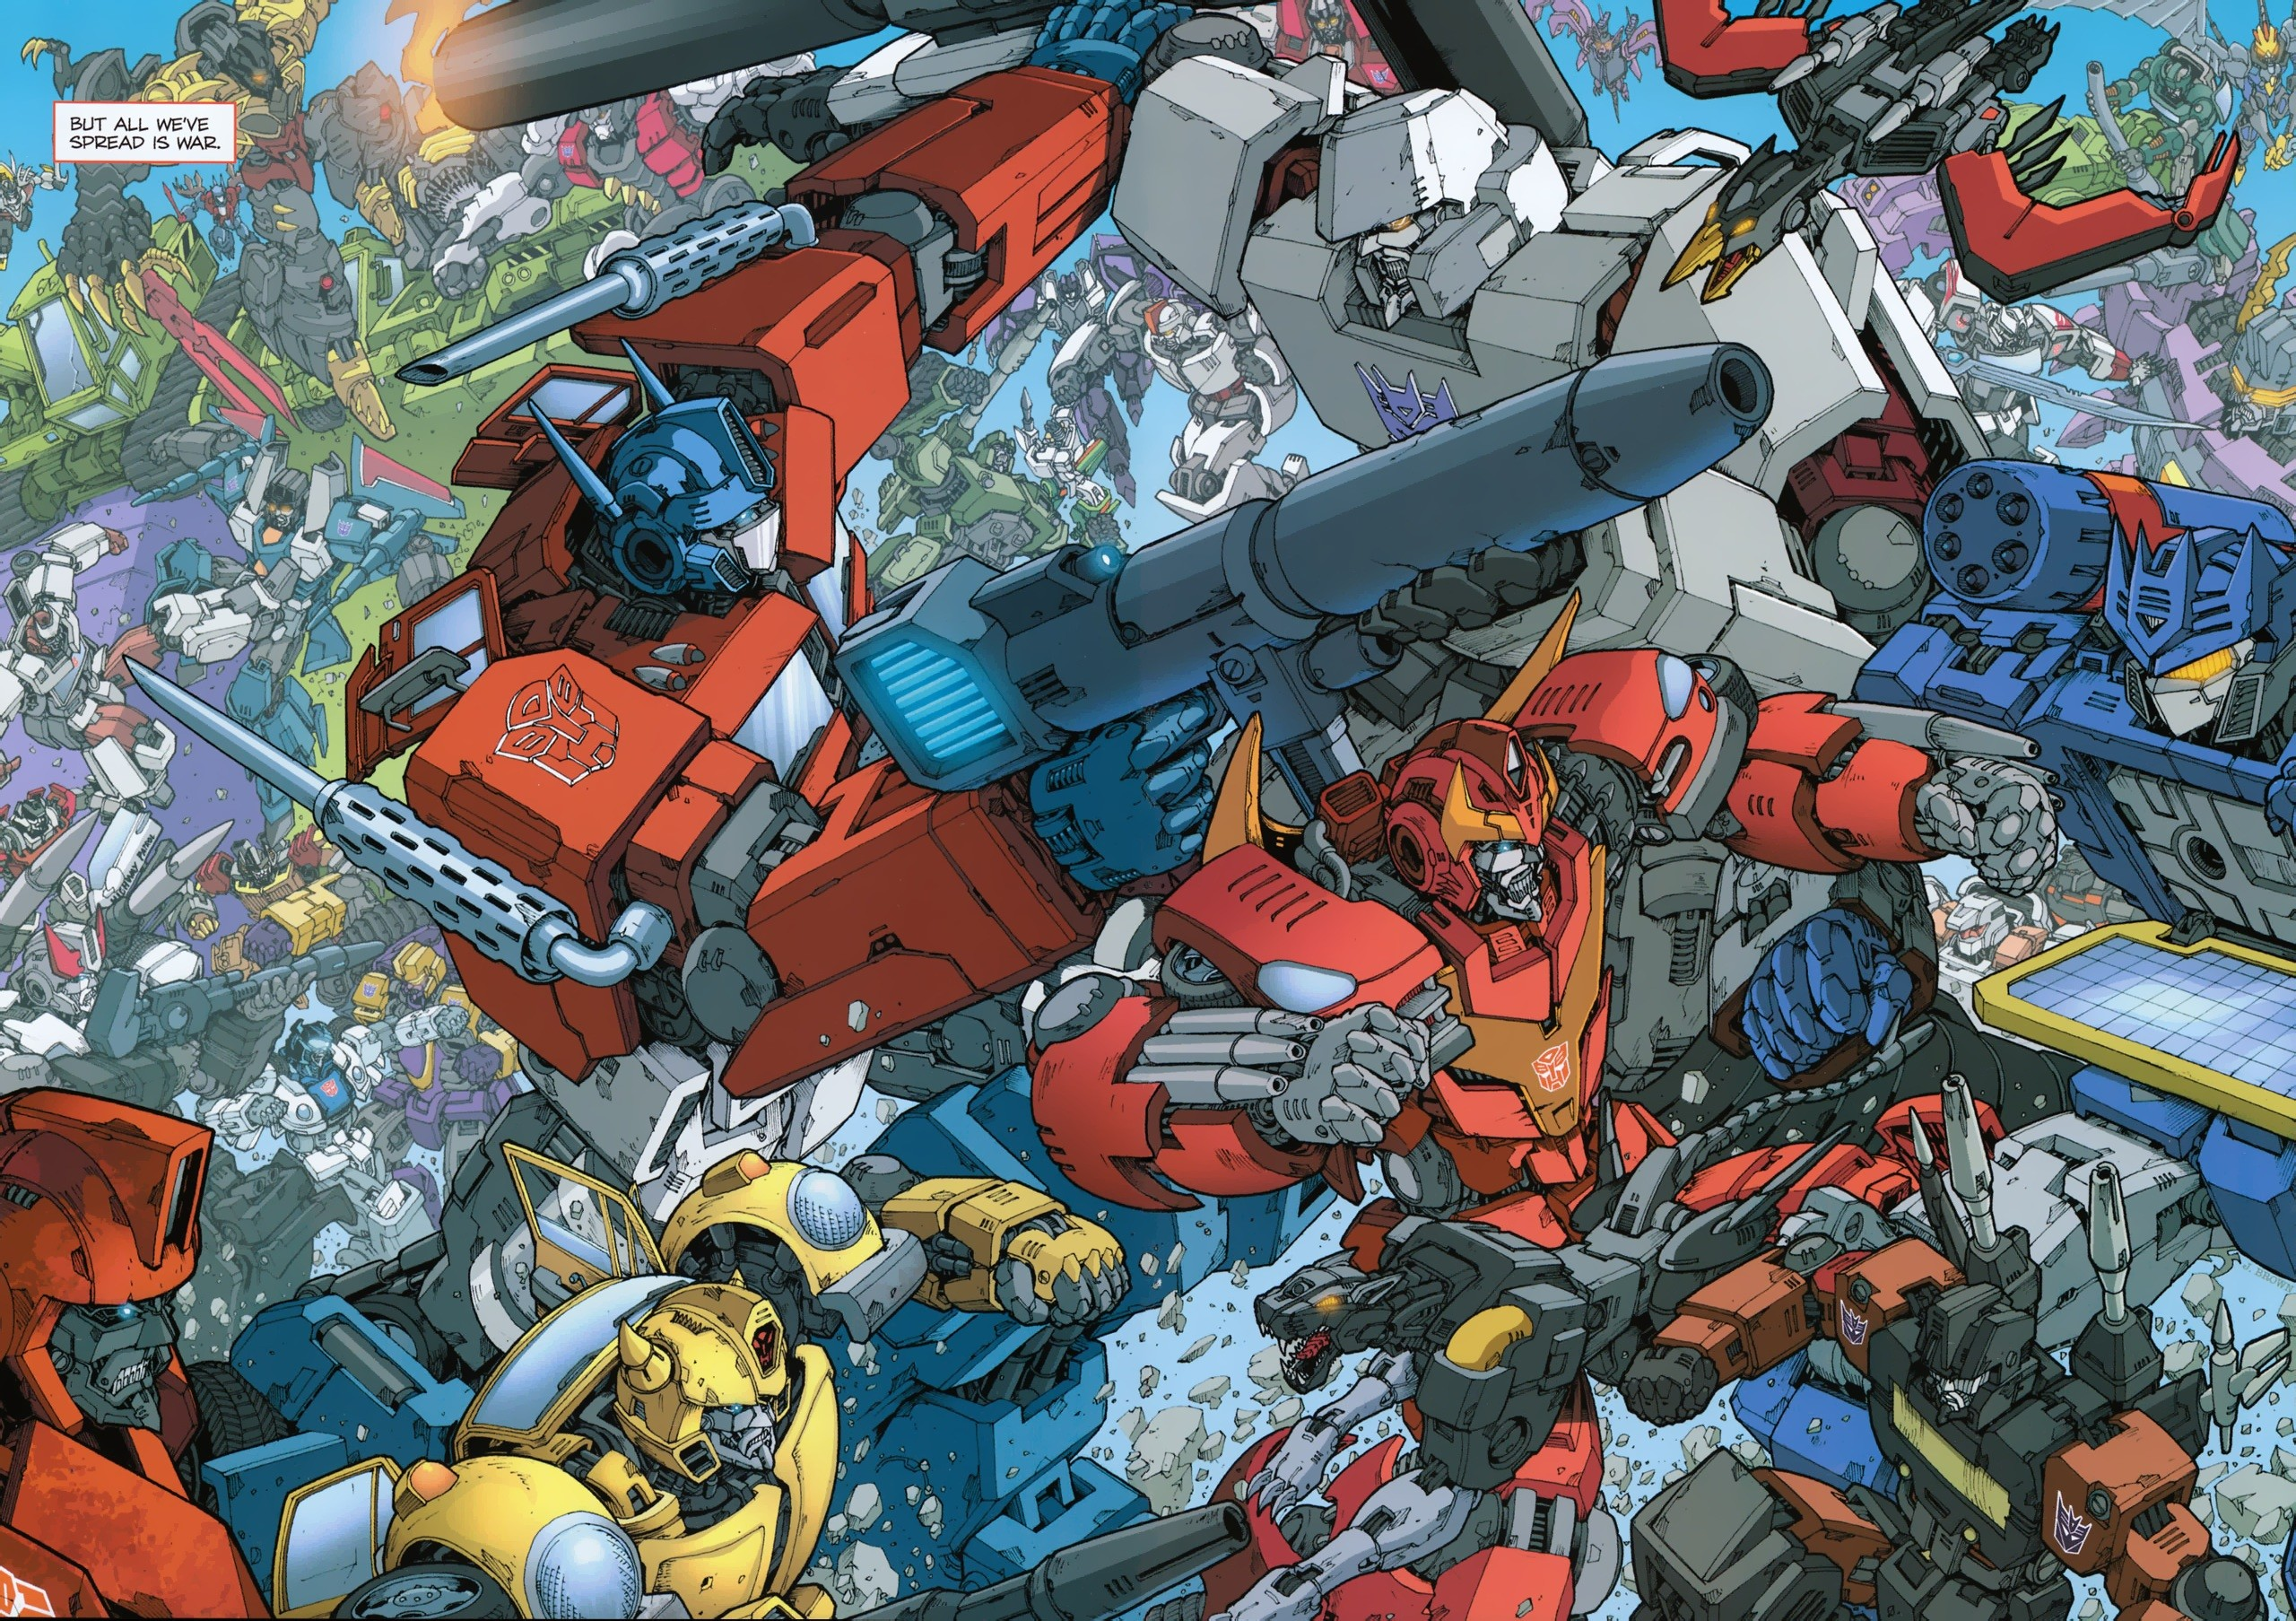 transformers 2010 panel new comic inside cover issue high resolution .